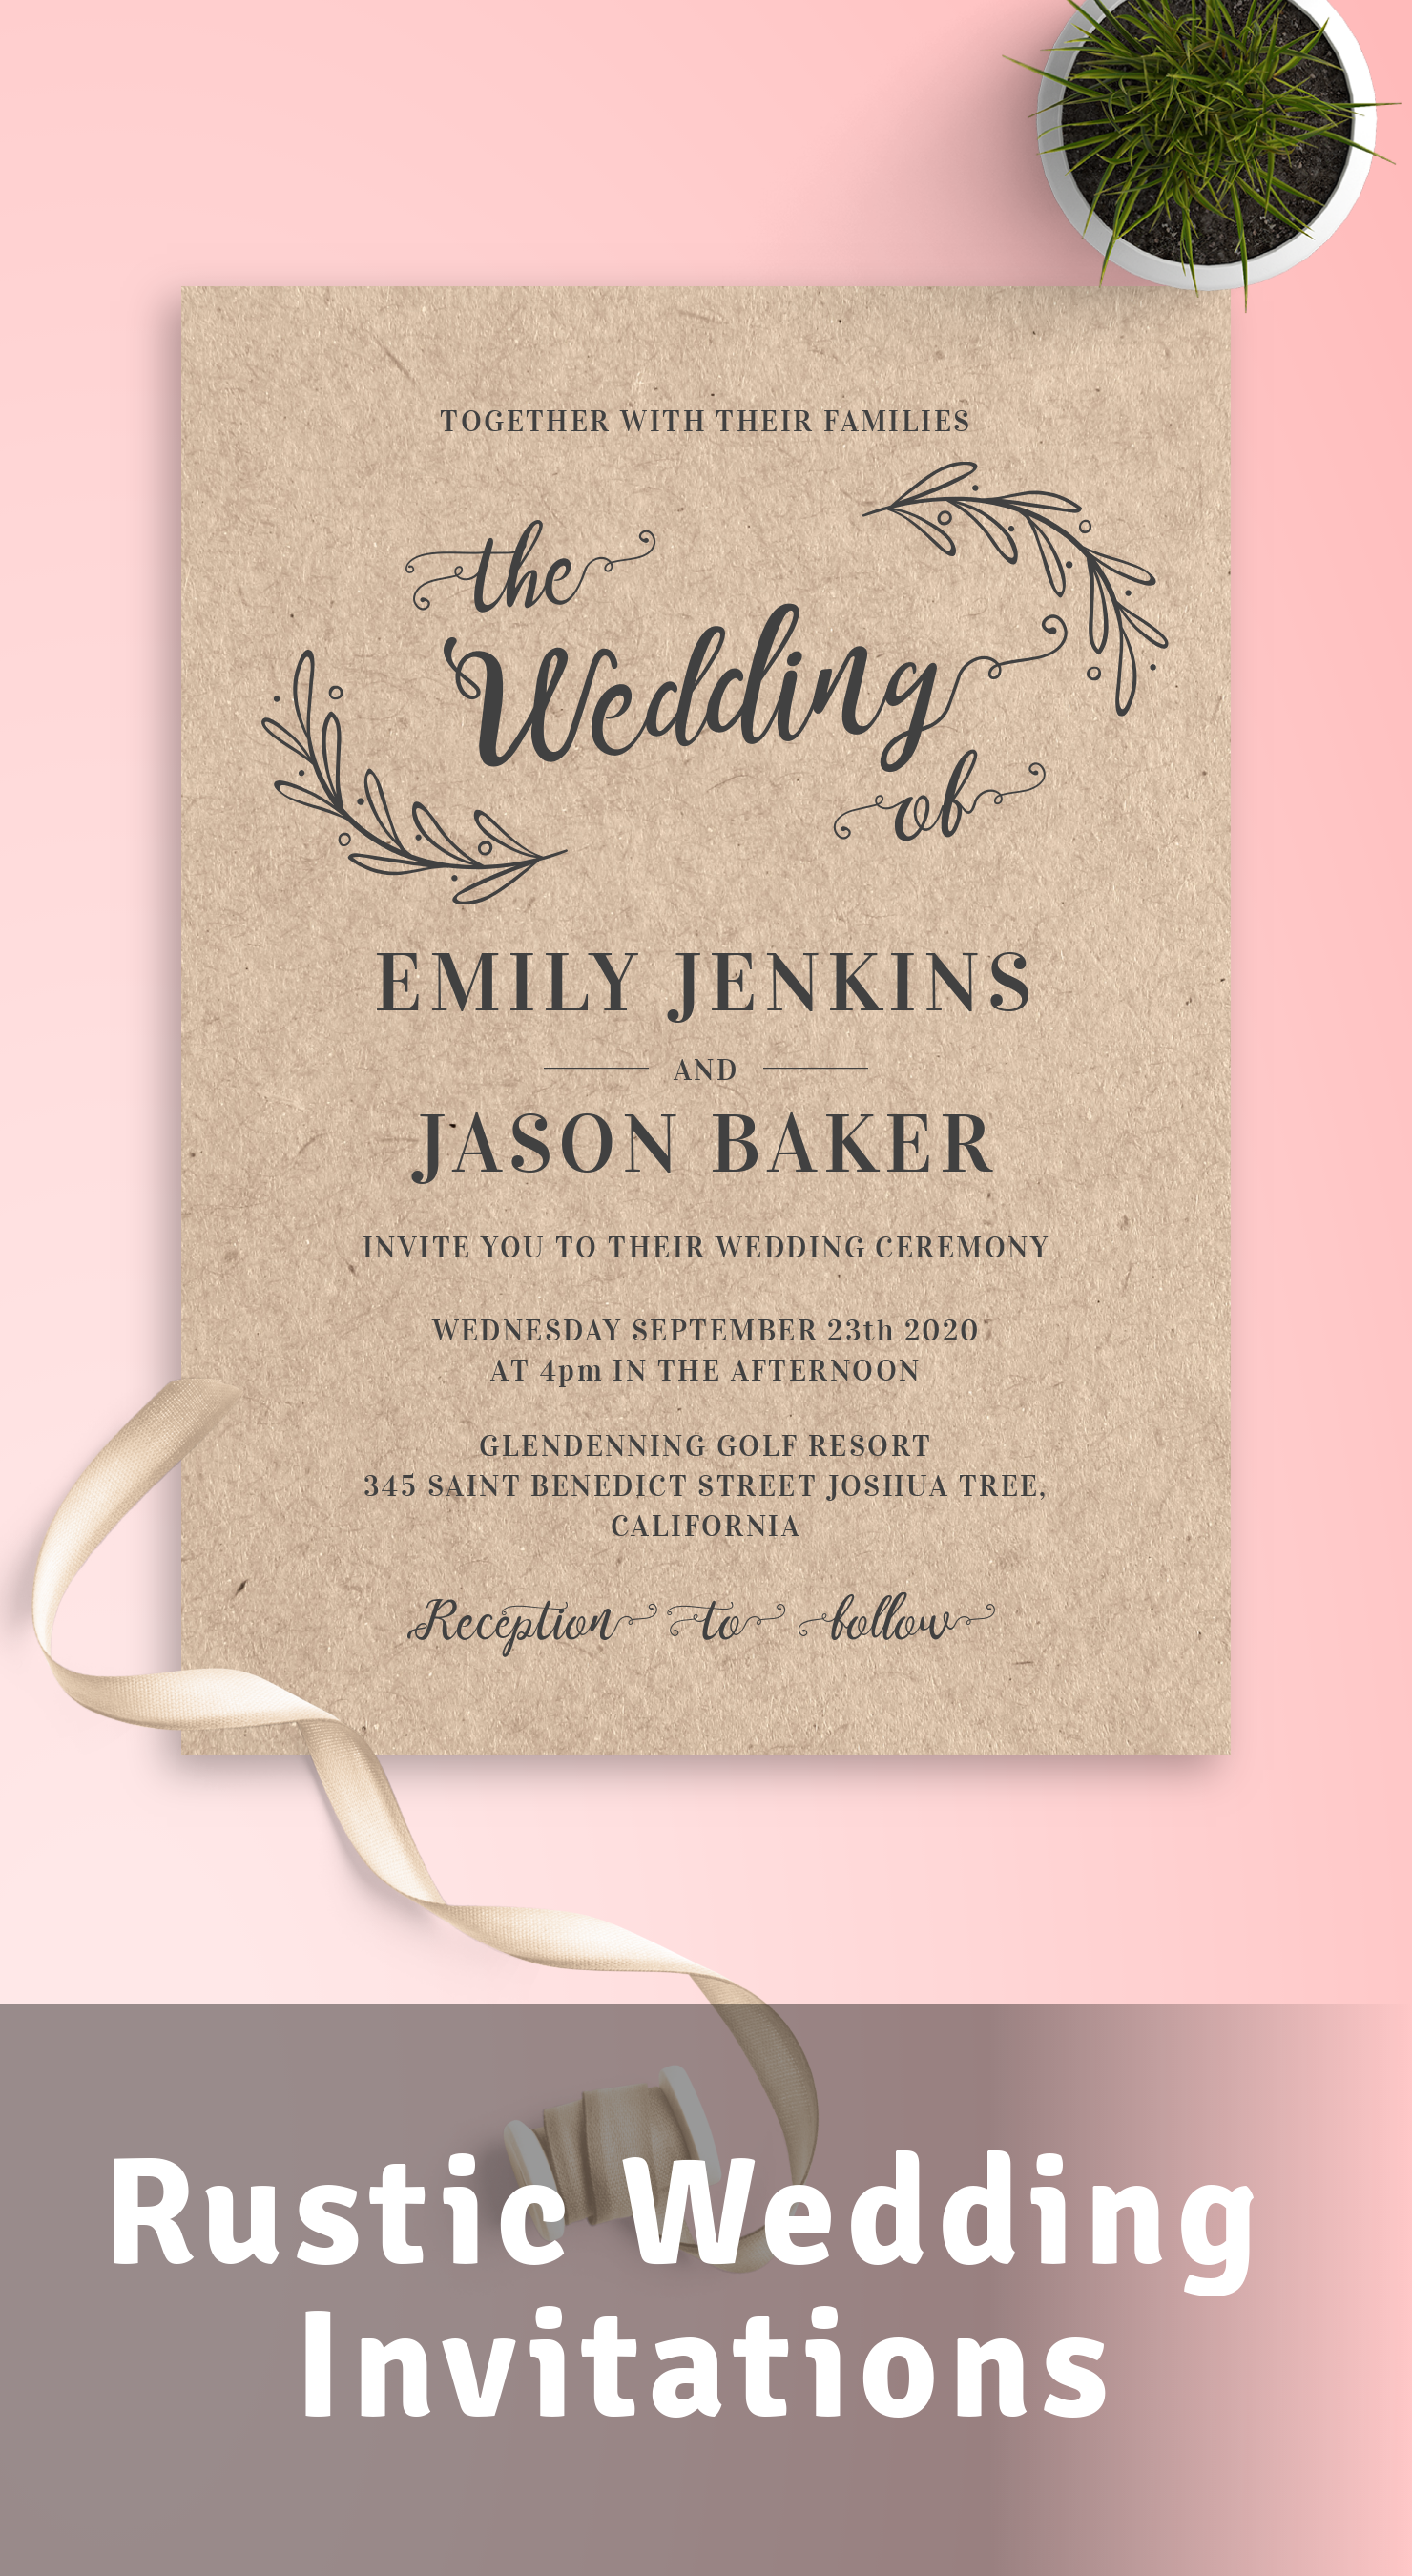 Get Rustic Wedding Invitations